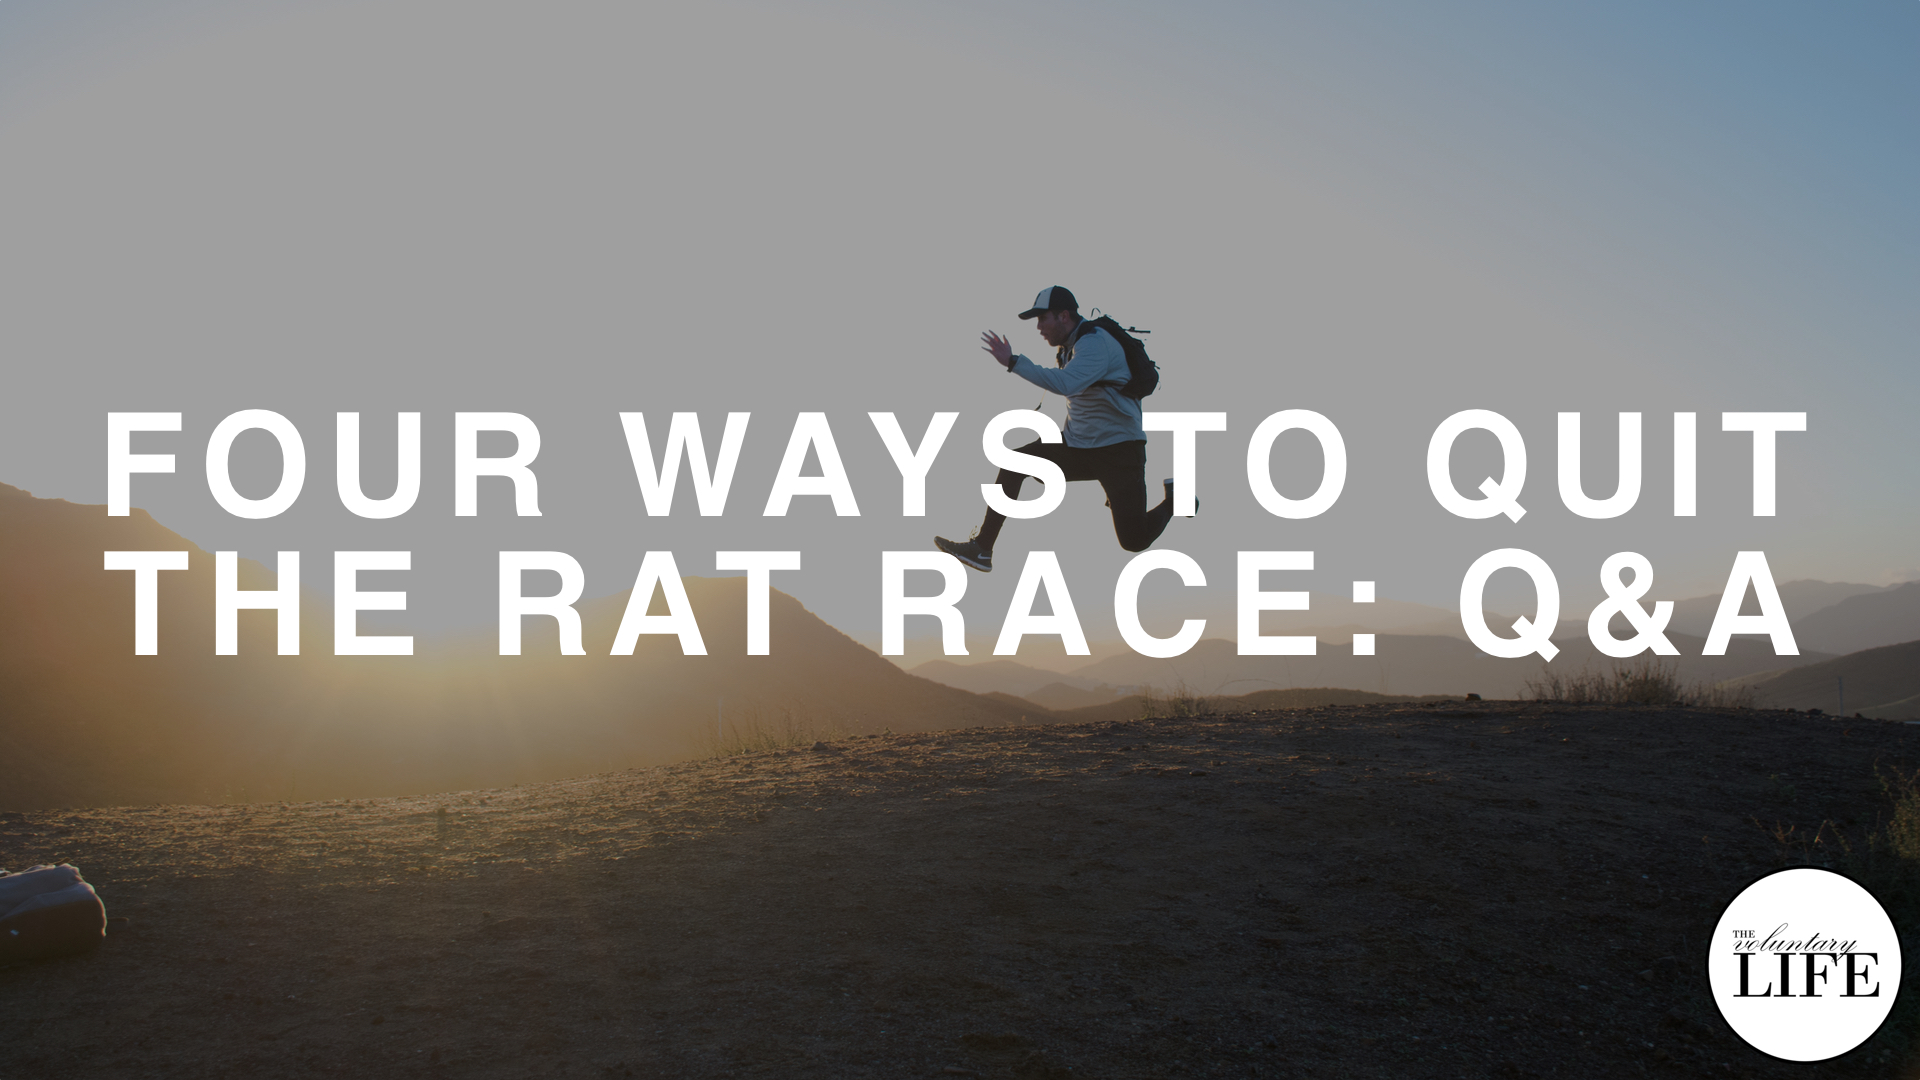 125 Q&A on Four Ways To Quit The Rat Race